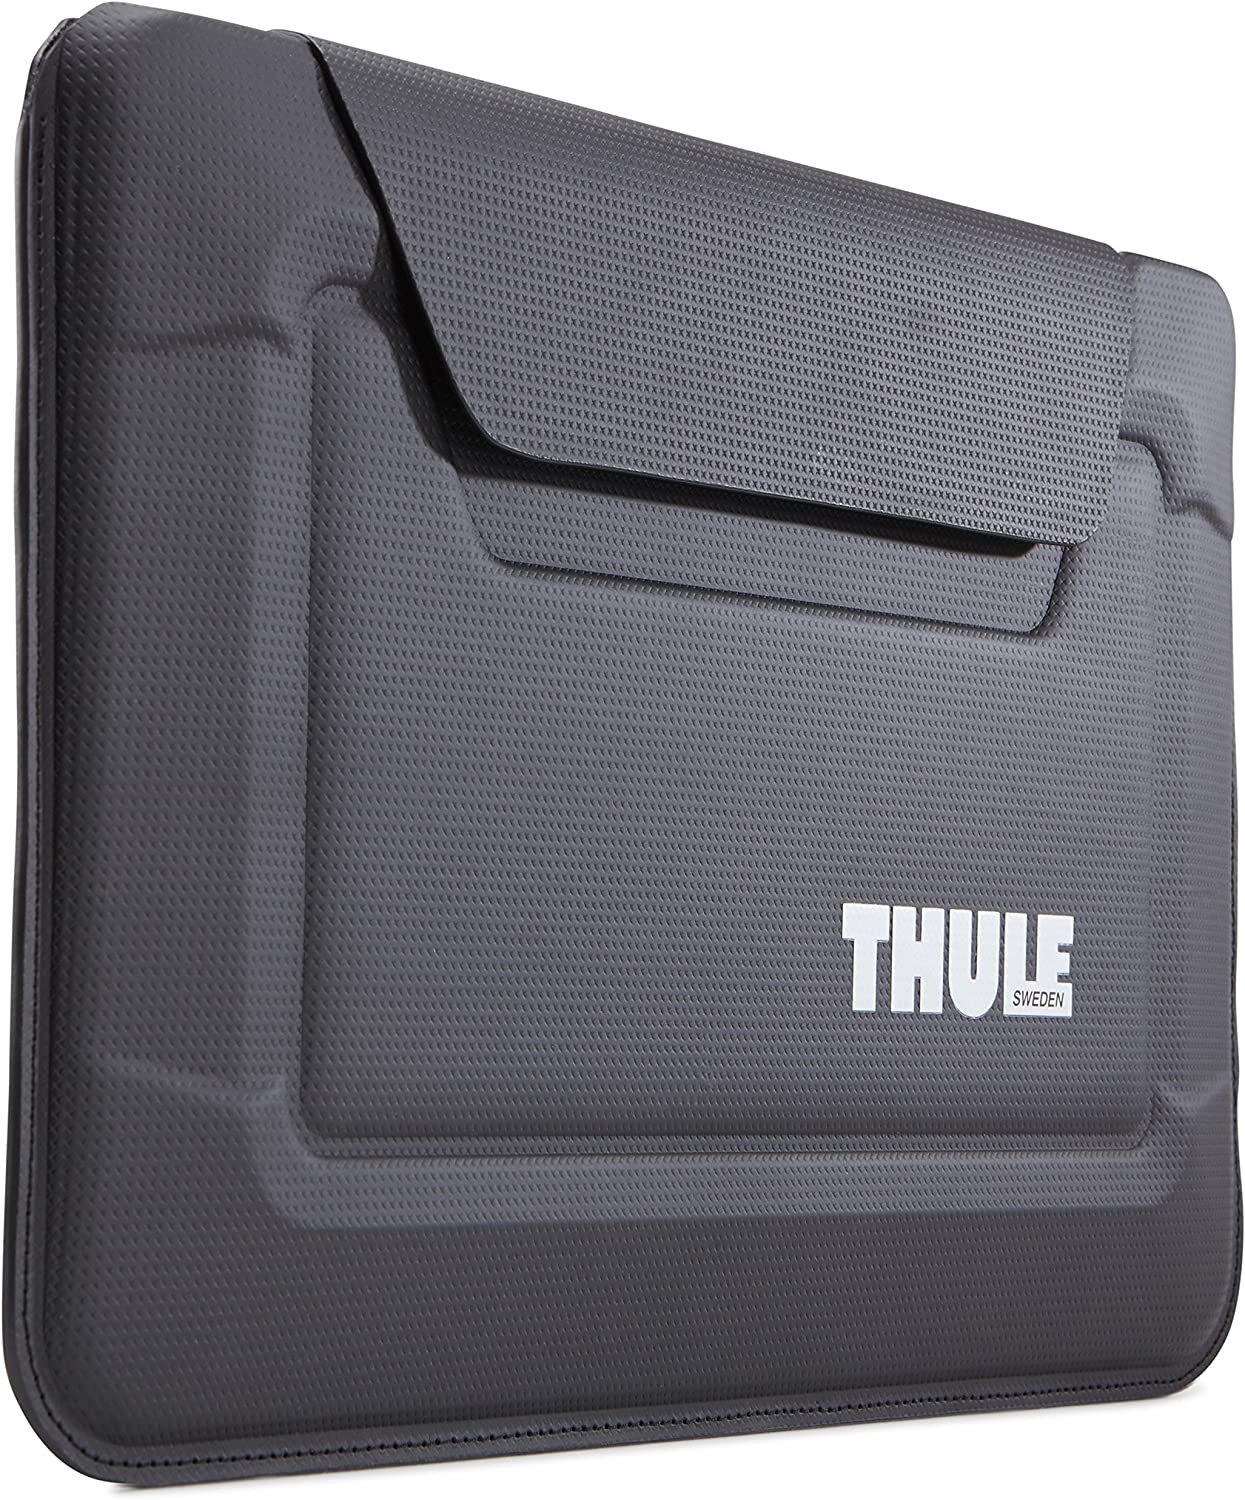 "Thule Gauntlet 3.0 11"" MacBook Air Envelope (3203099)"